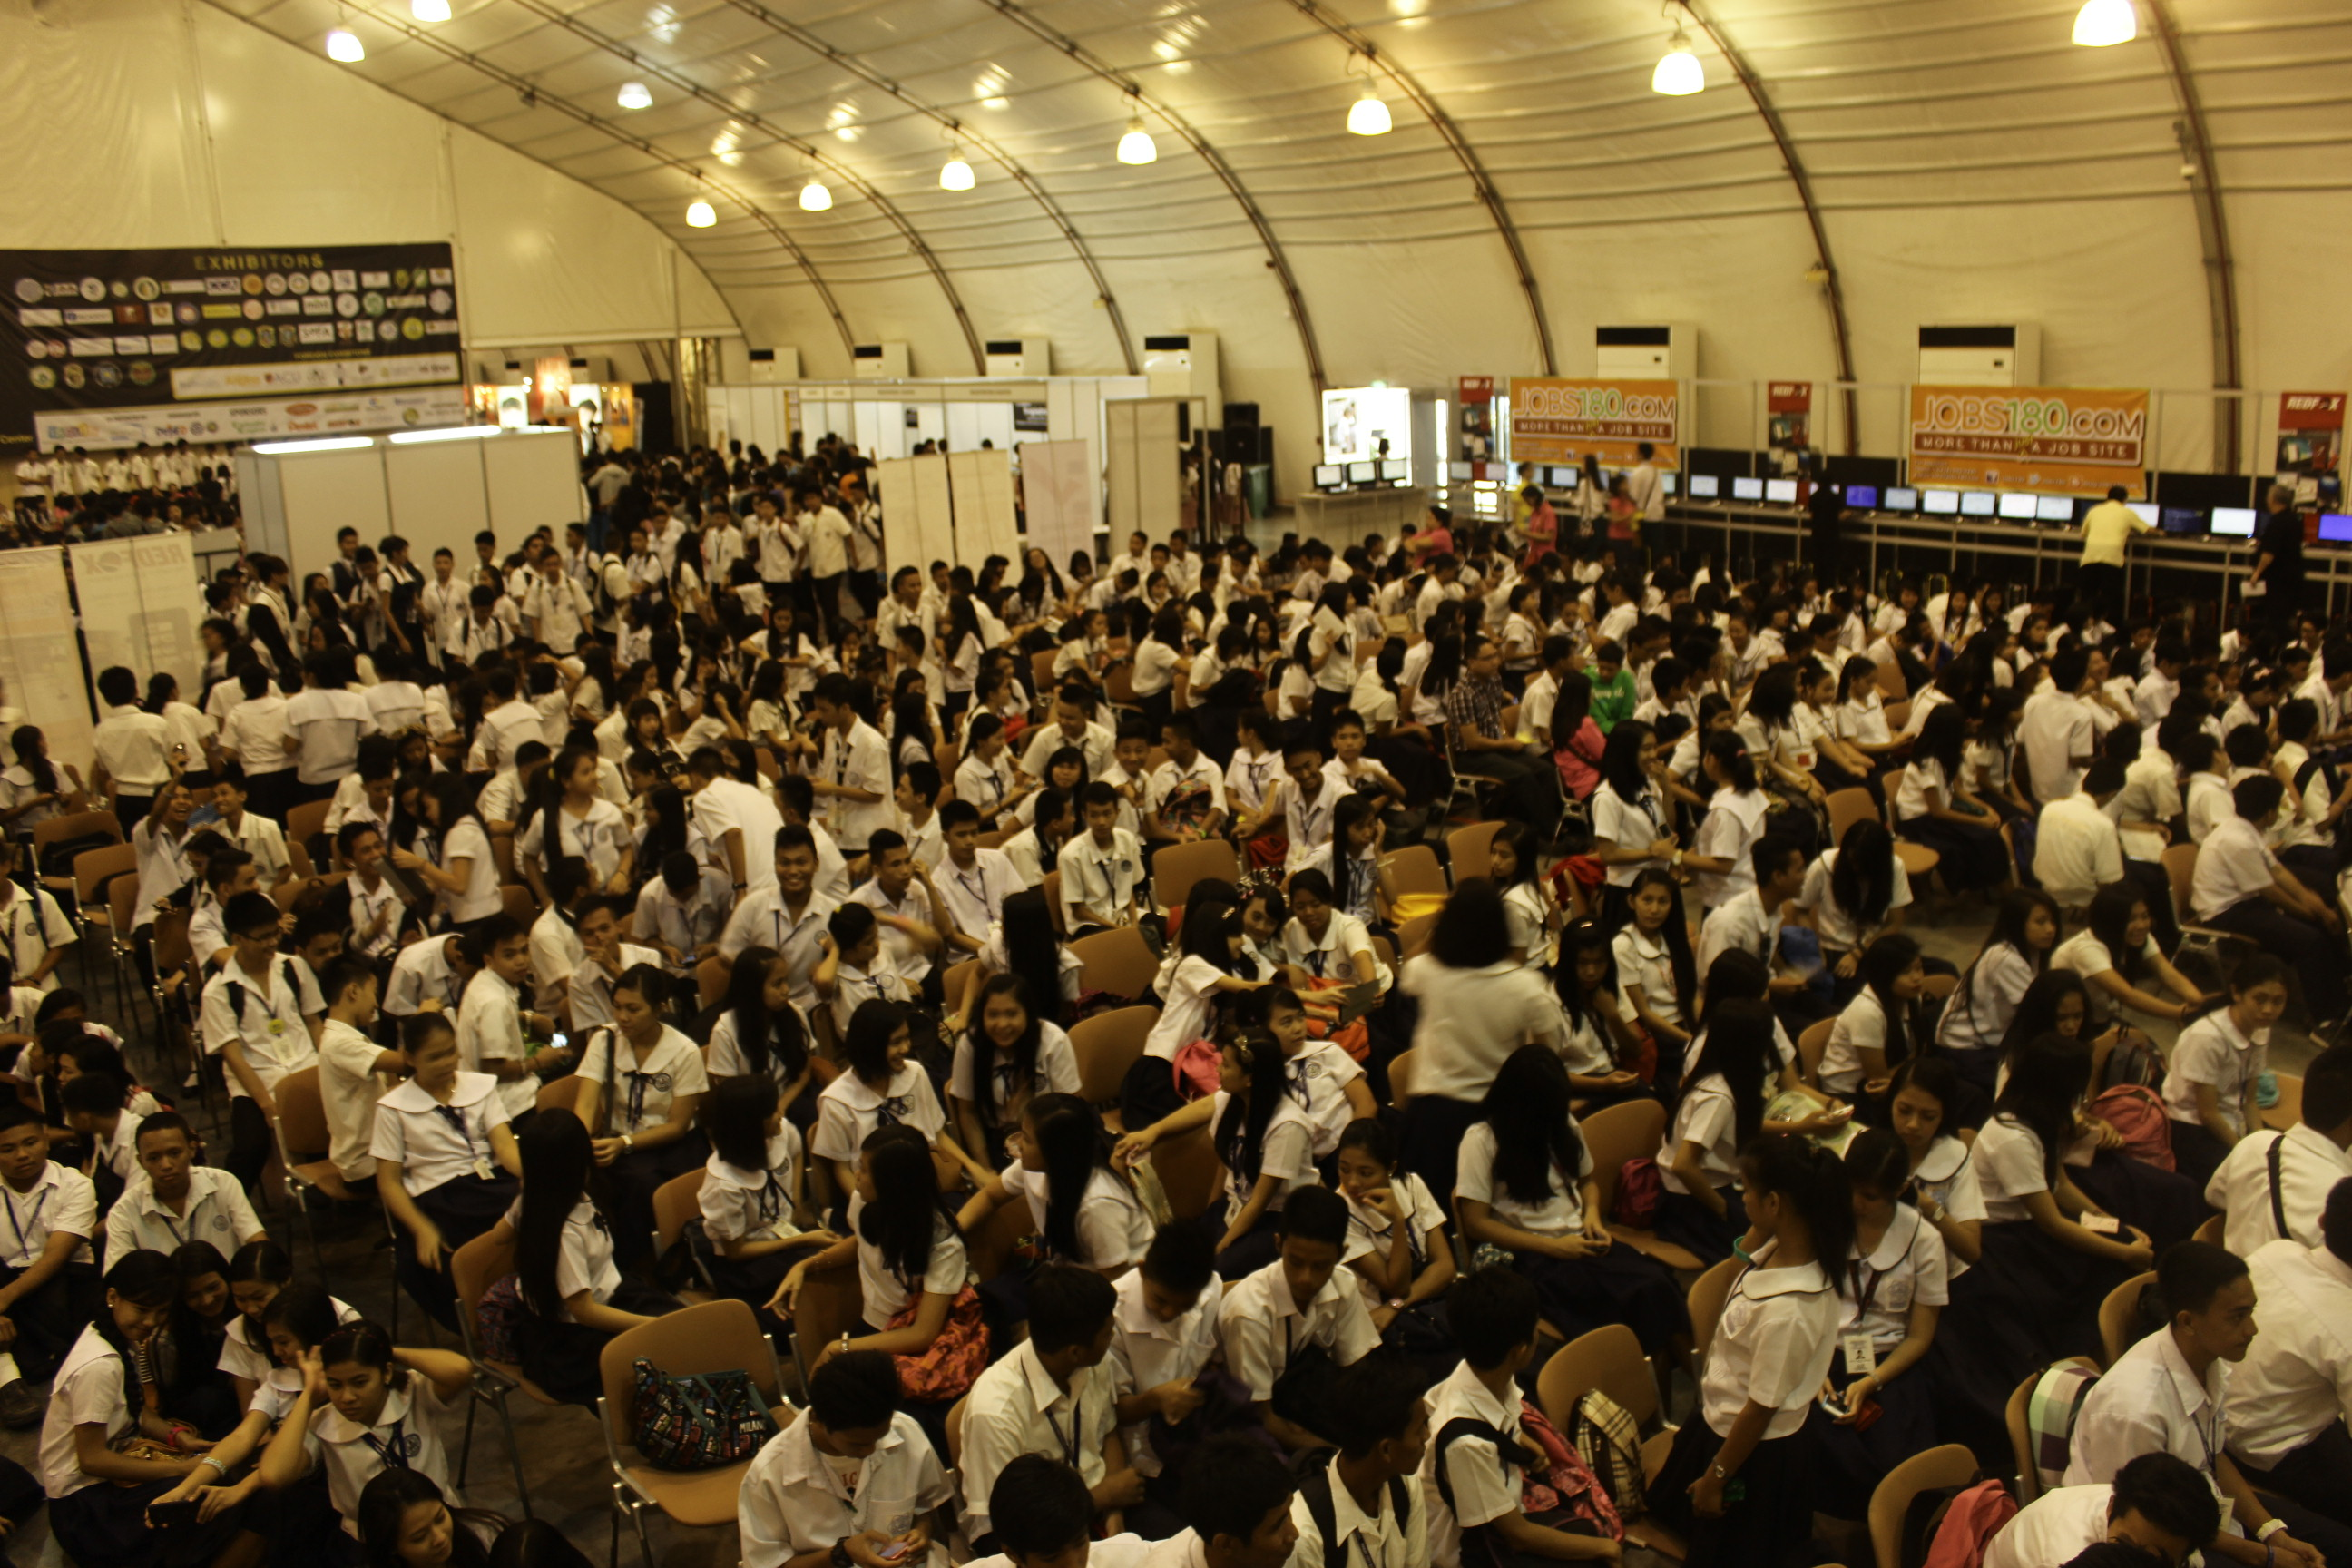 10,070 high school students are gearing up for the 26th Career Counseling & Guidance Fair